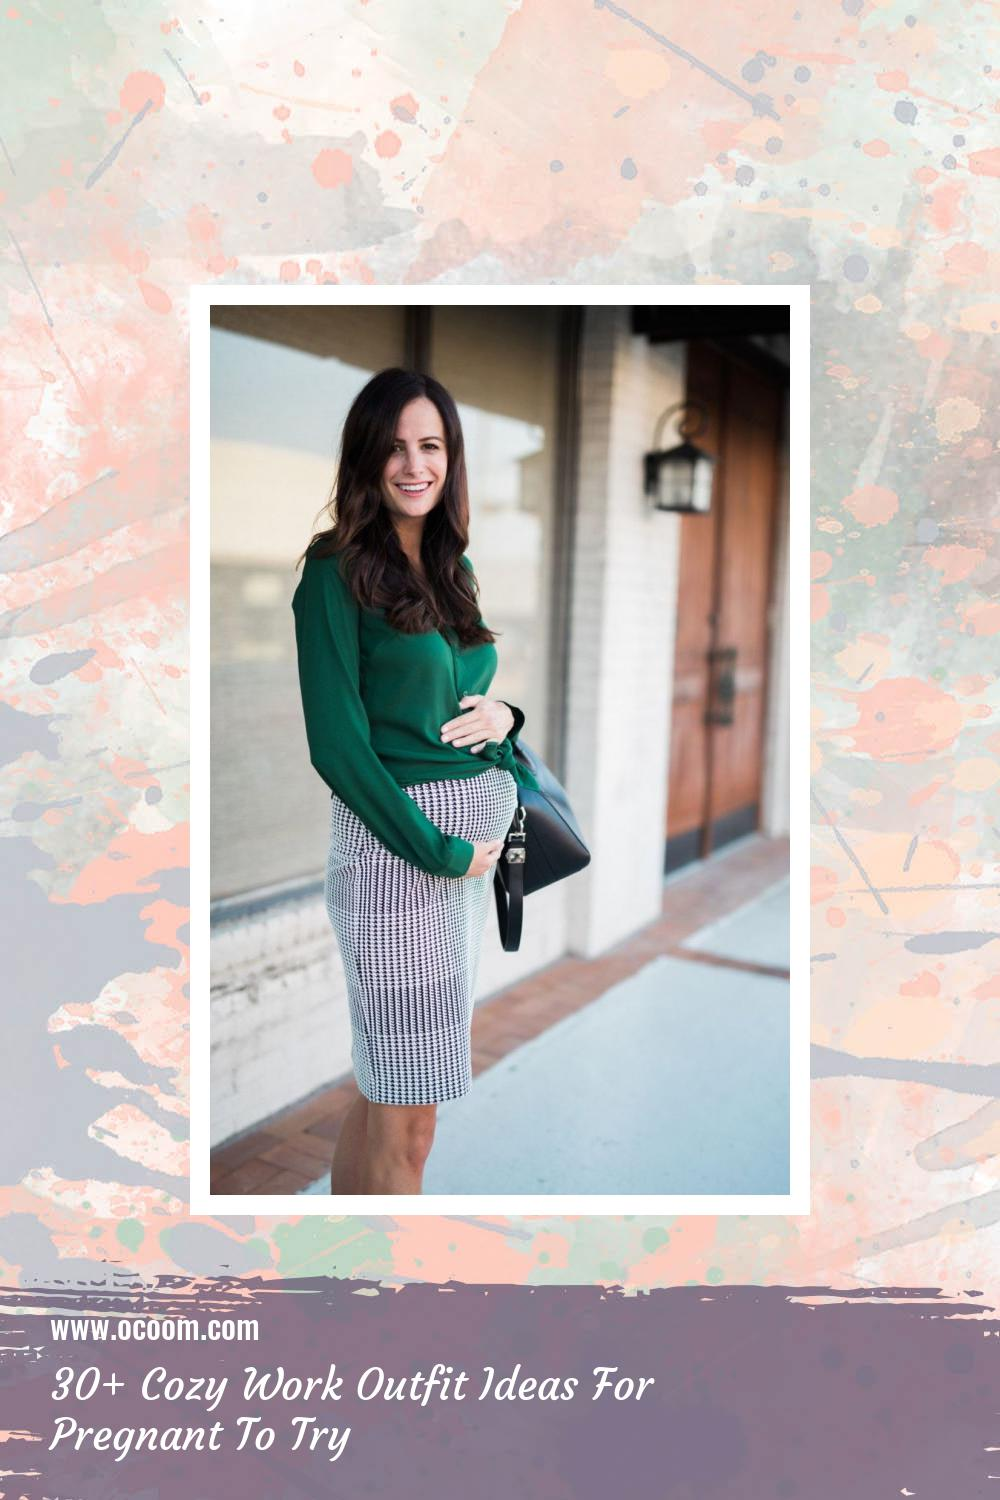 30+ Cozy Work Outfit Ideas For Pregnant To Try 8